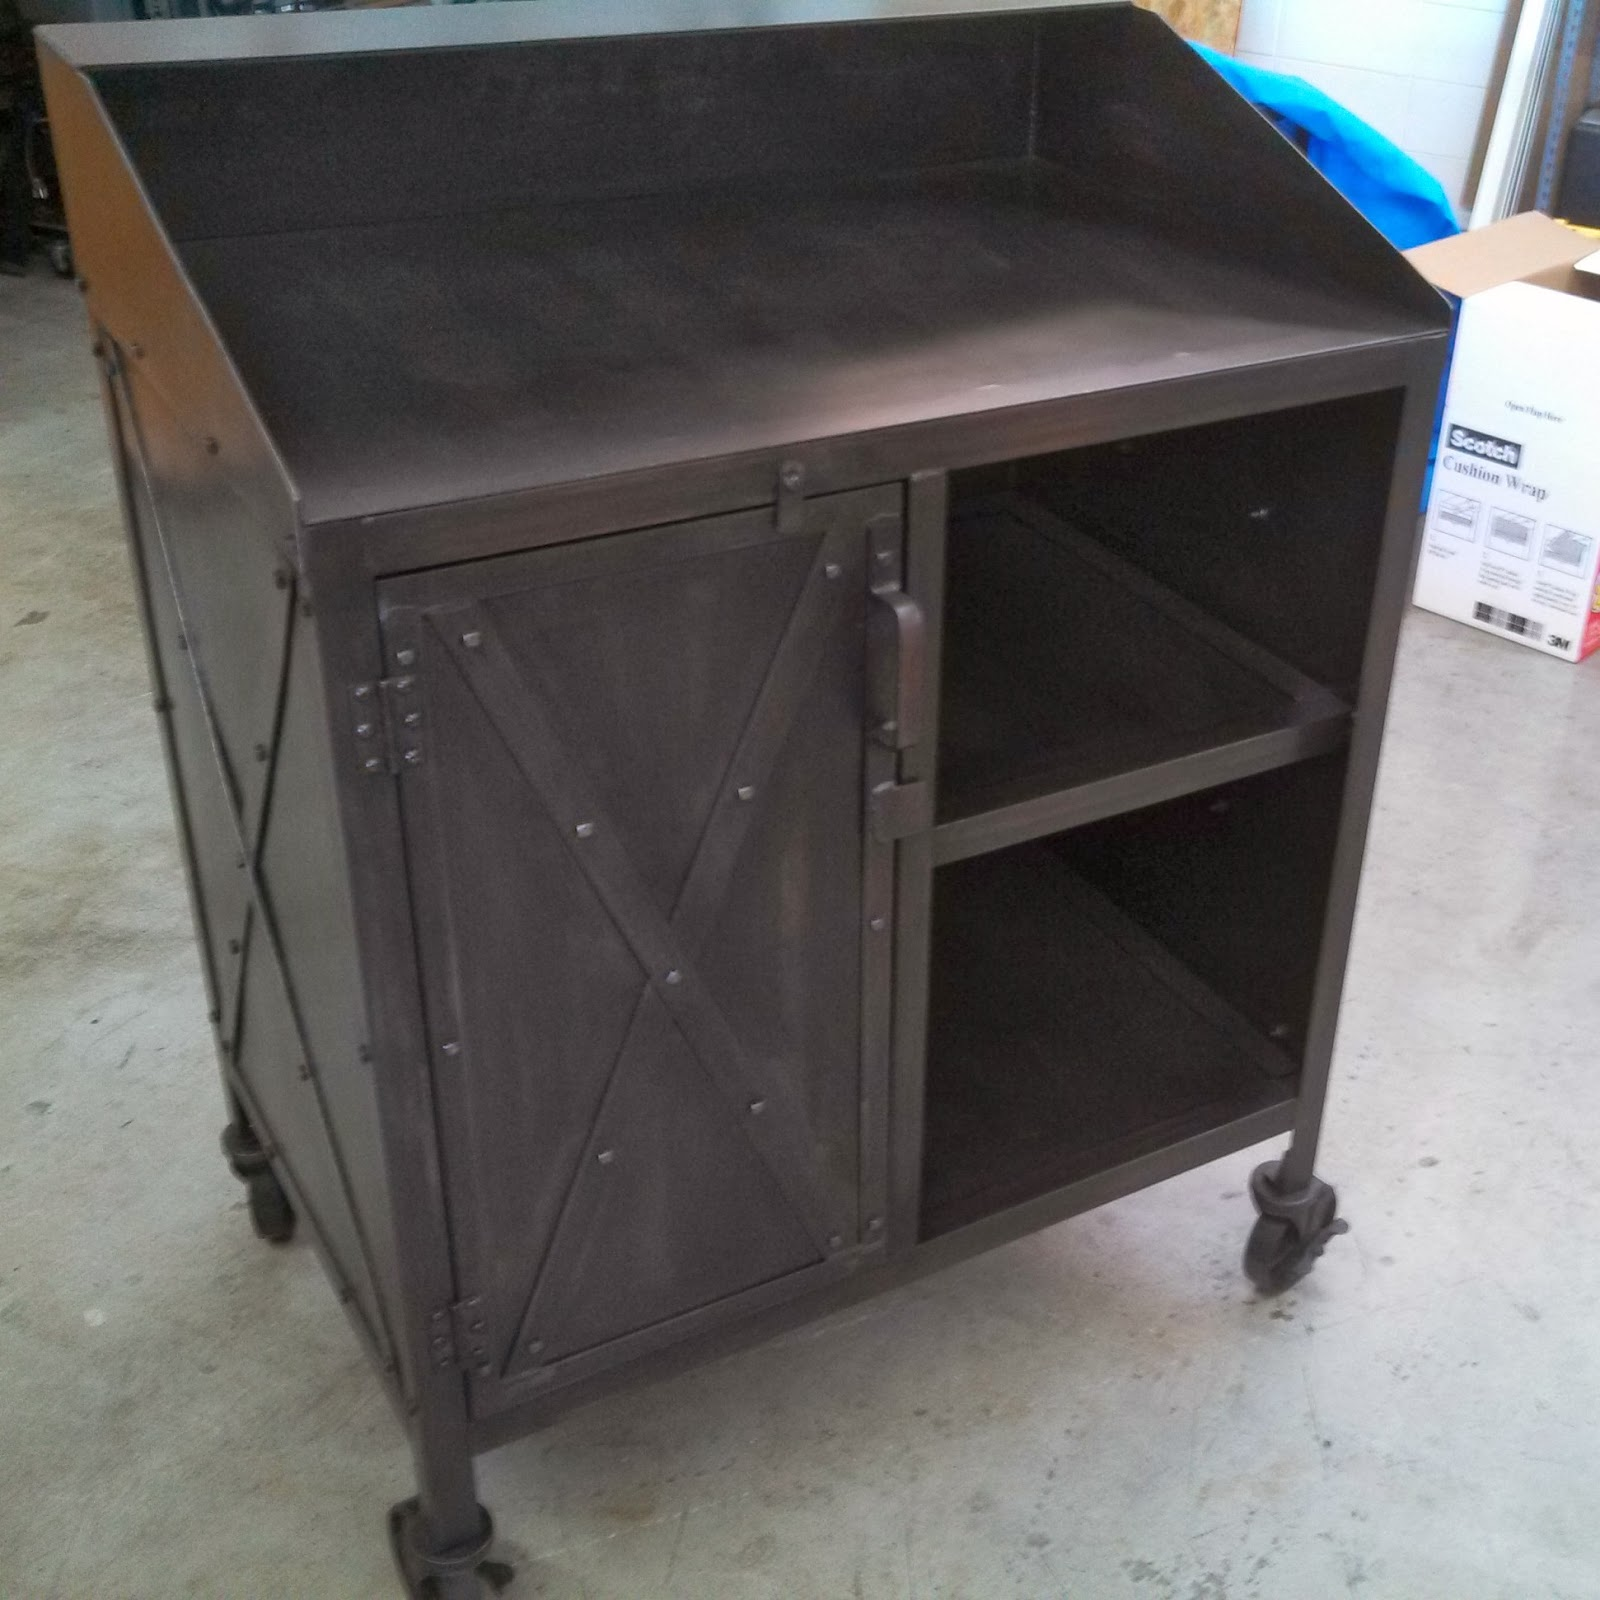 Real Industrial Edge Furniture llc: Hostess stand